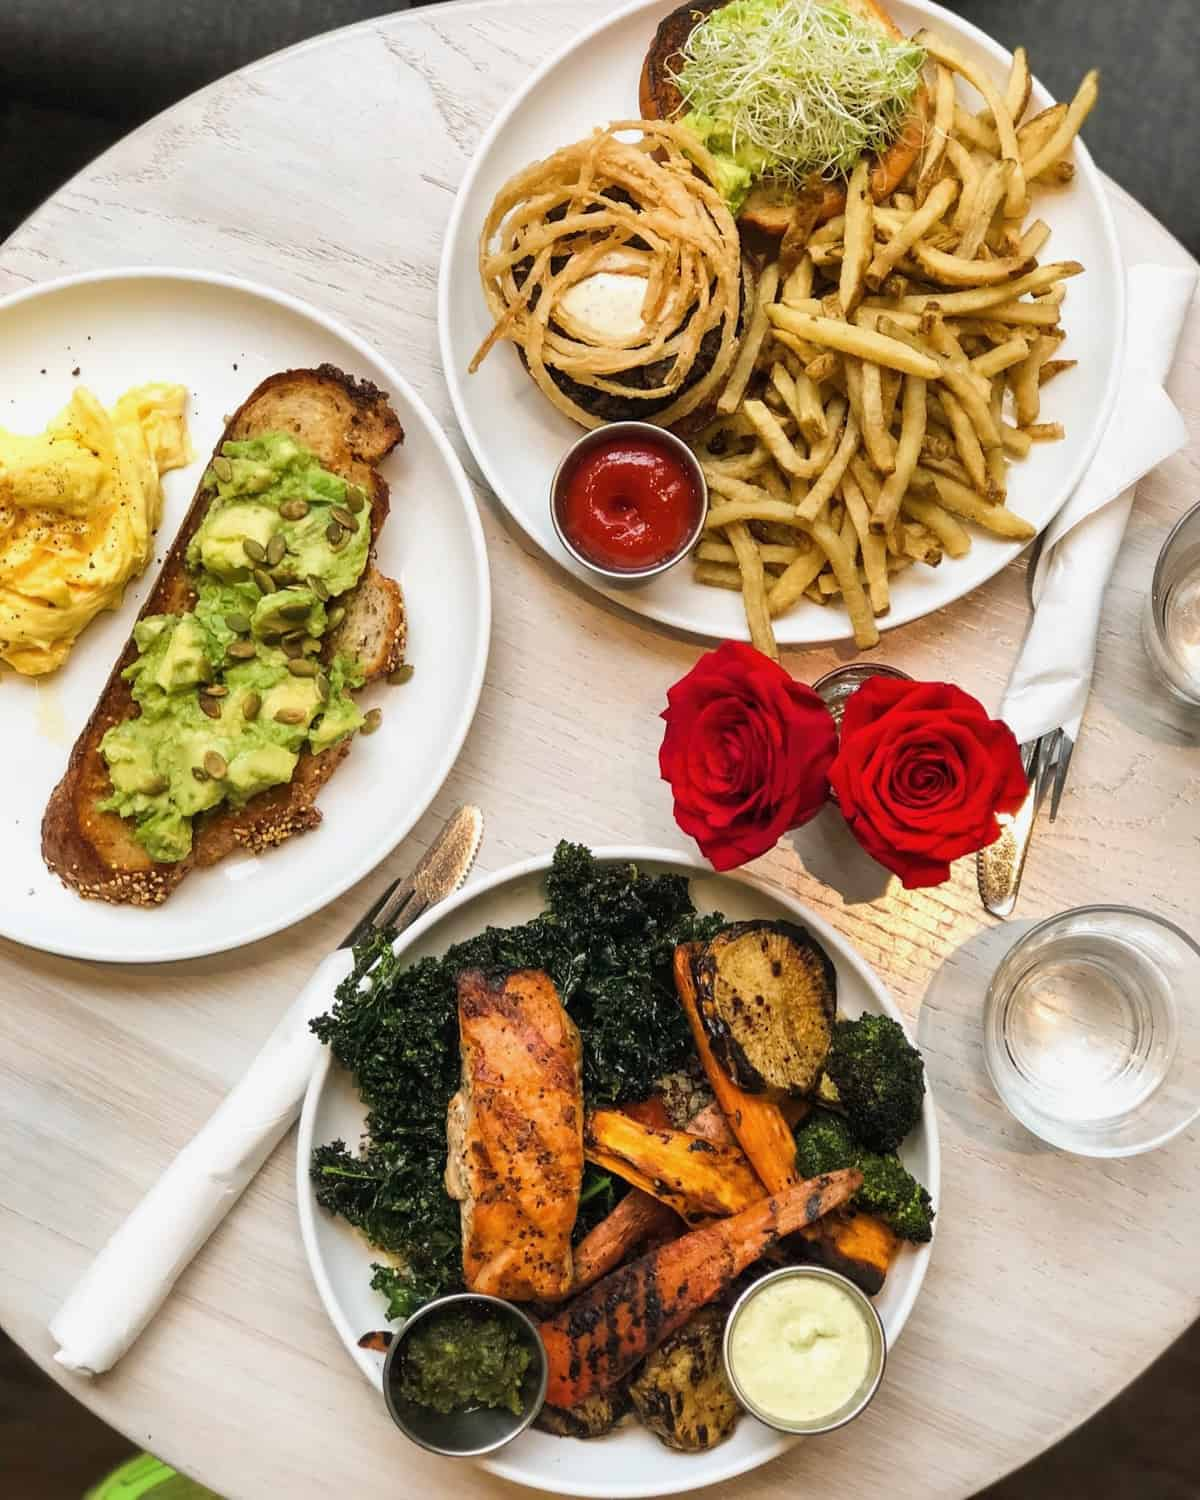 Table of a big bowl of veggies with grilled salmon on it, avocado toast with scrambled eggs, and a veggie burger with french fries